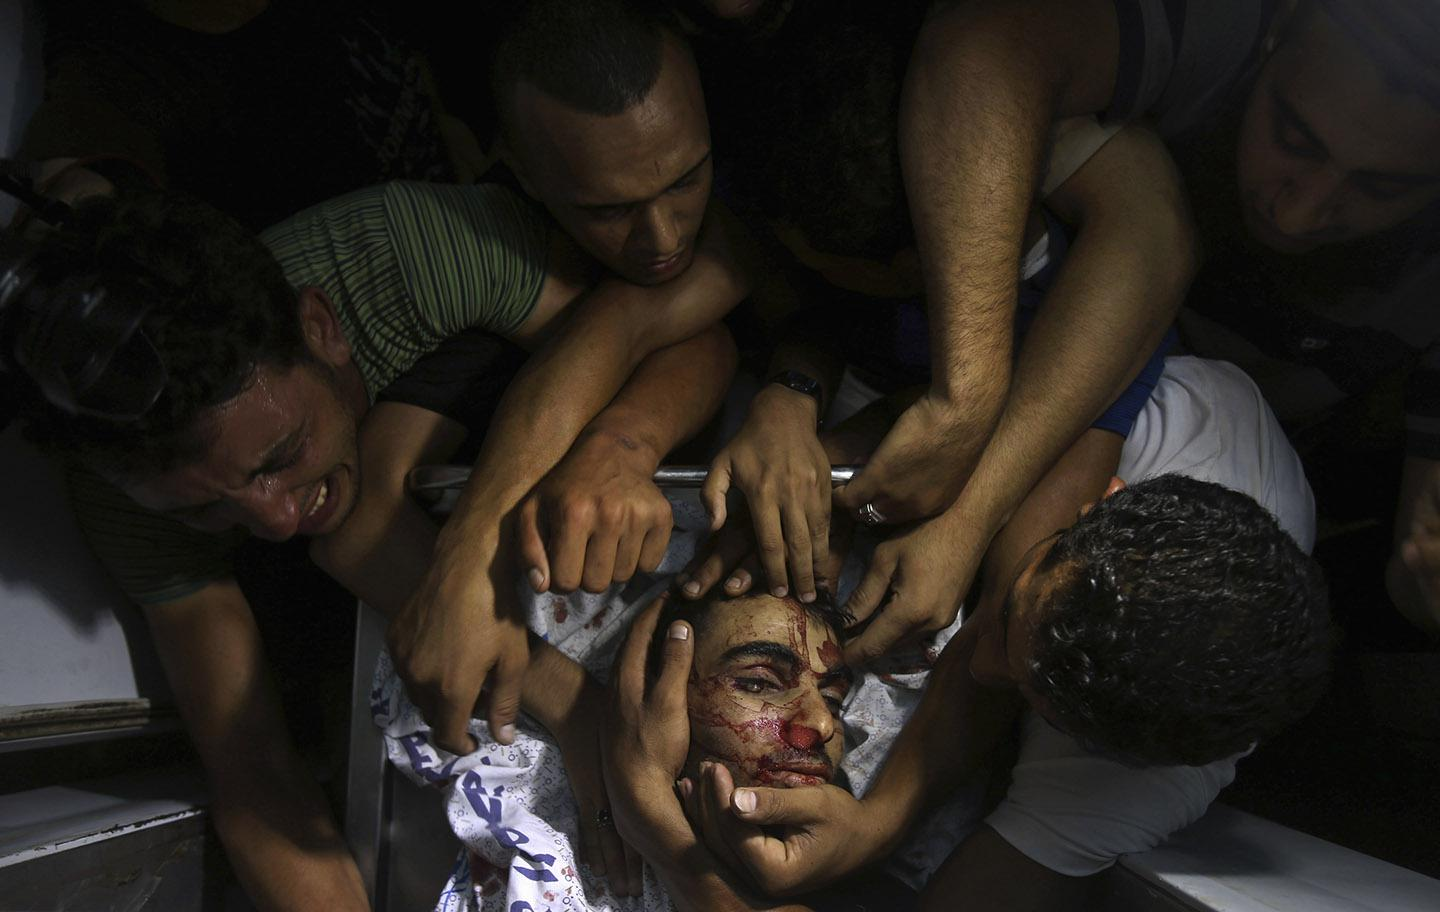 People mourn around the body of a Palestinian militant at a hospital morgue in the central Gaza Strip July 6, 2014.